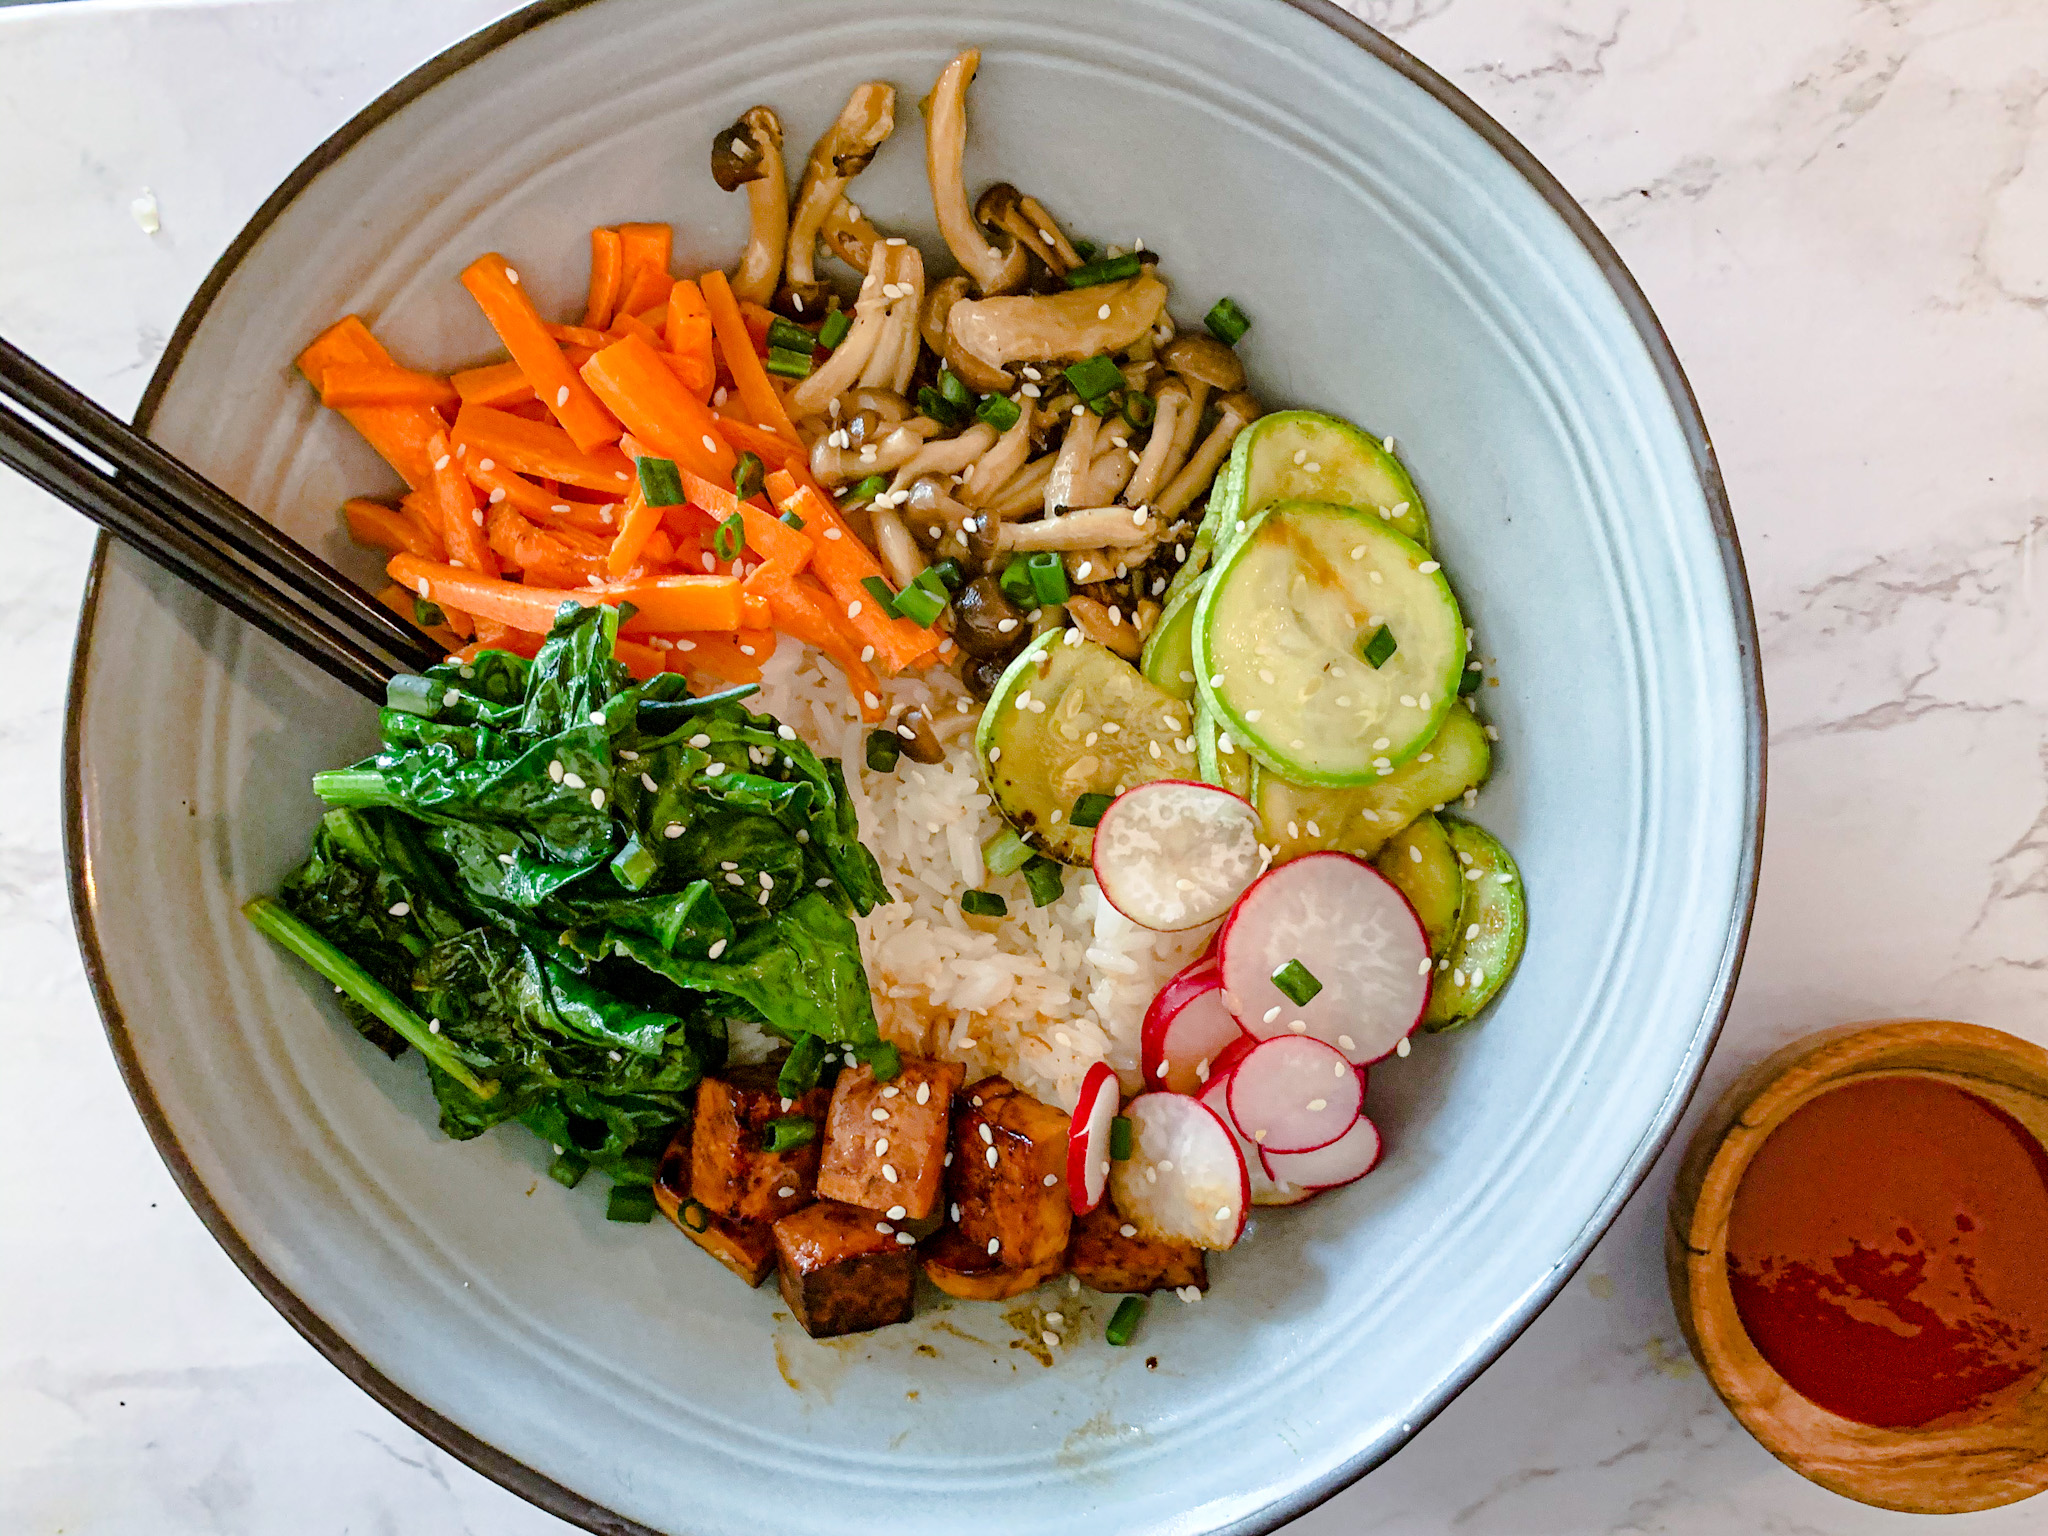 Easy Vegan Bibimbap with Tofu (Korean Rice Bowl)